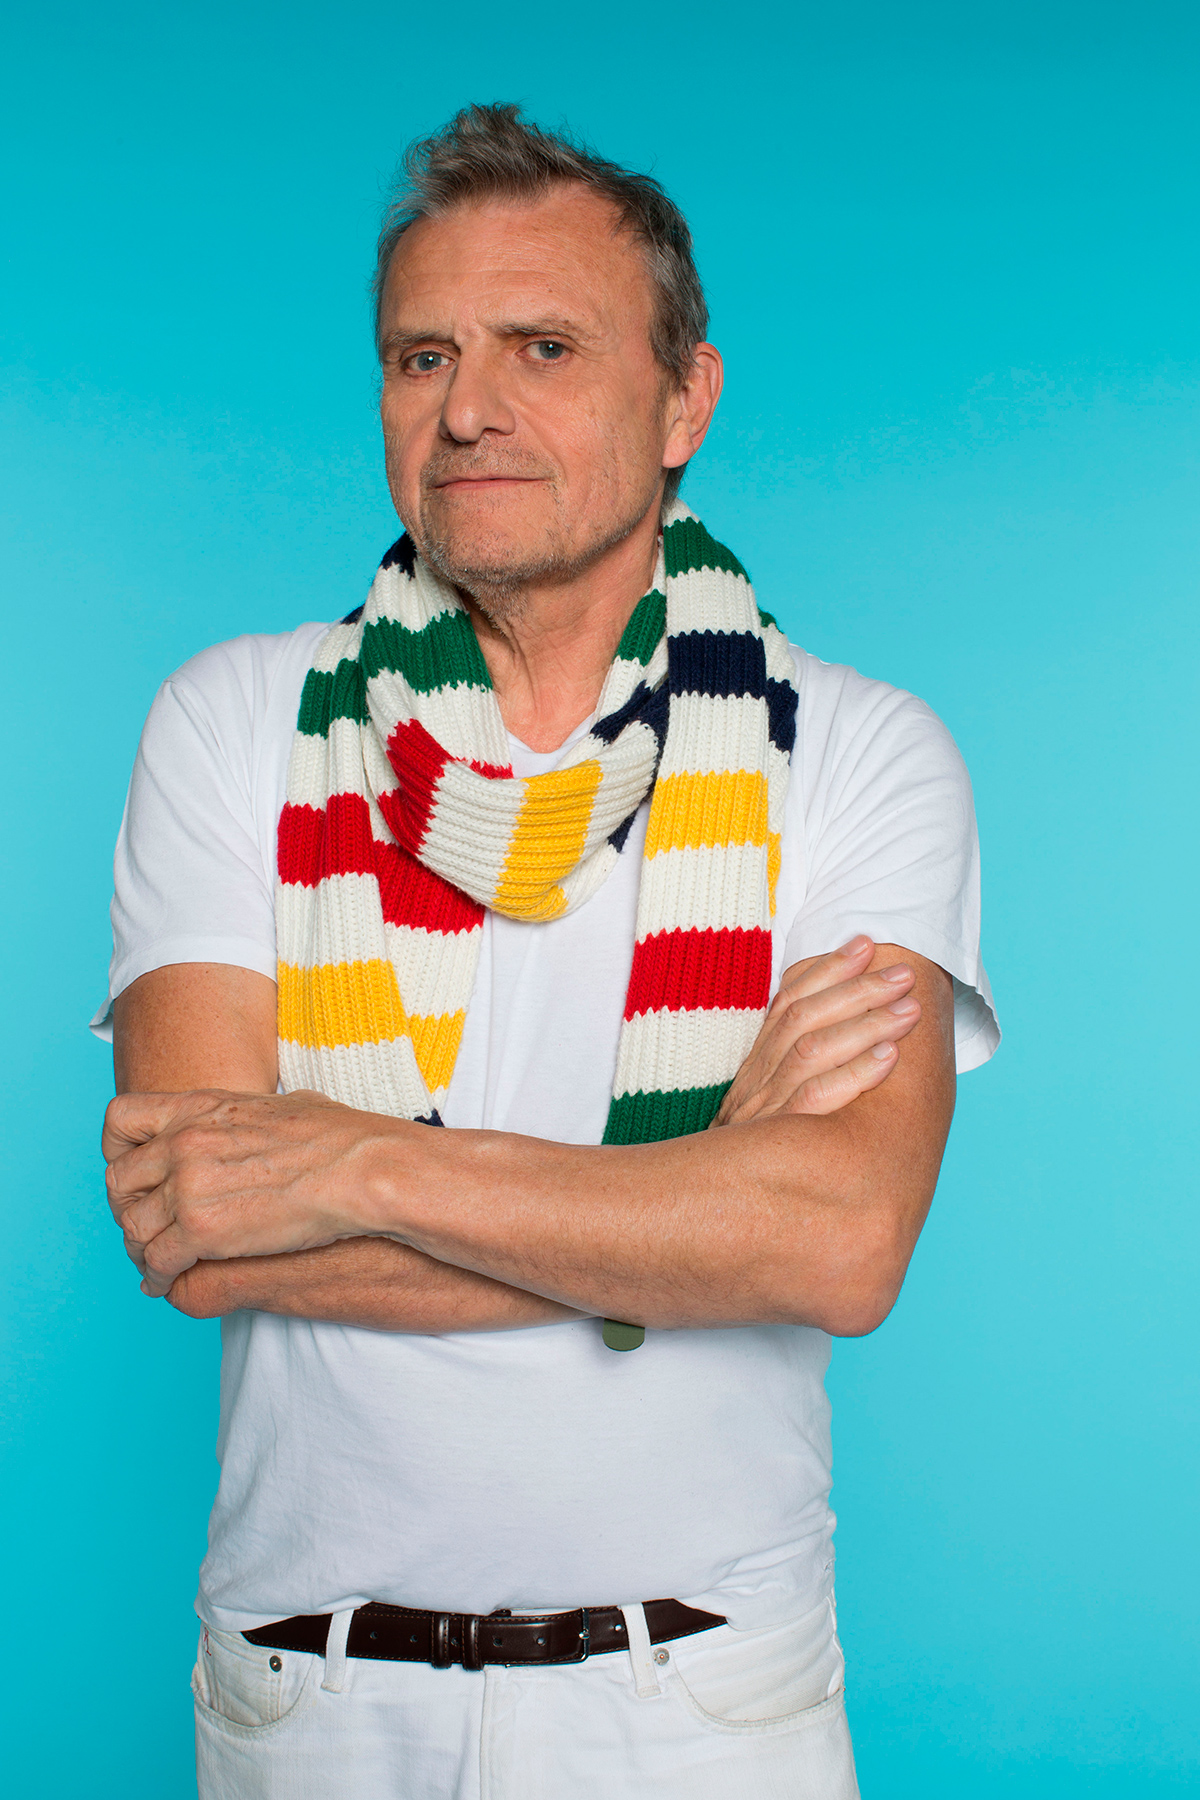 Jean-Charles de Castelbajac © United Colors of Benetton